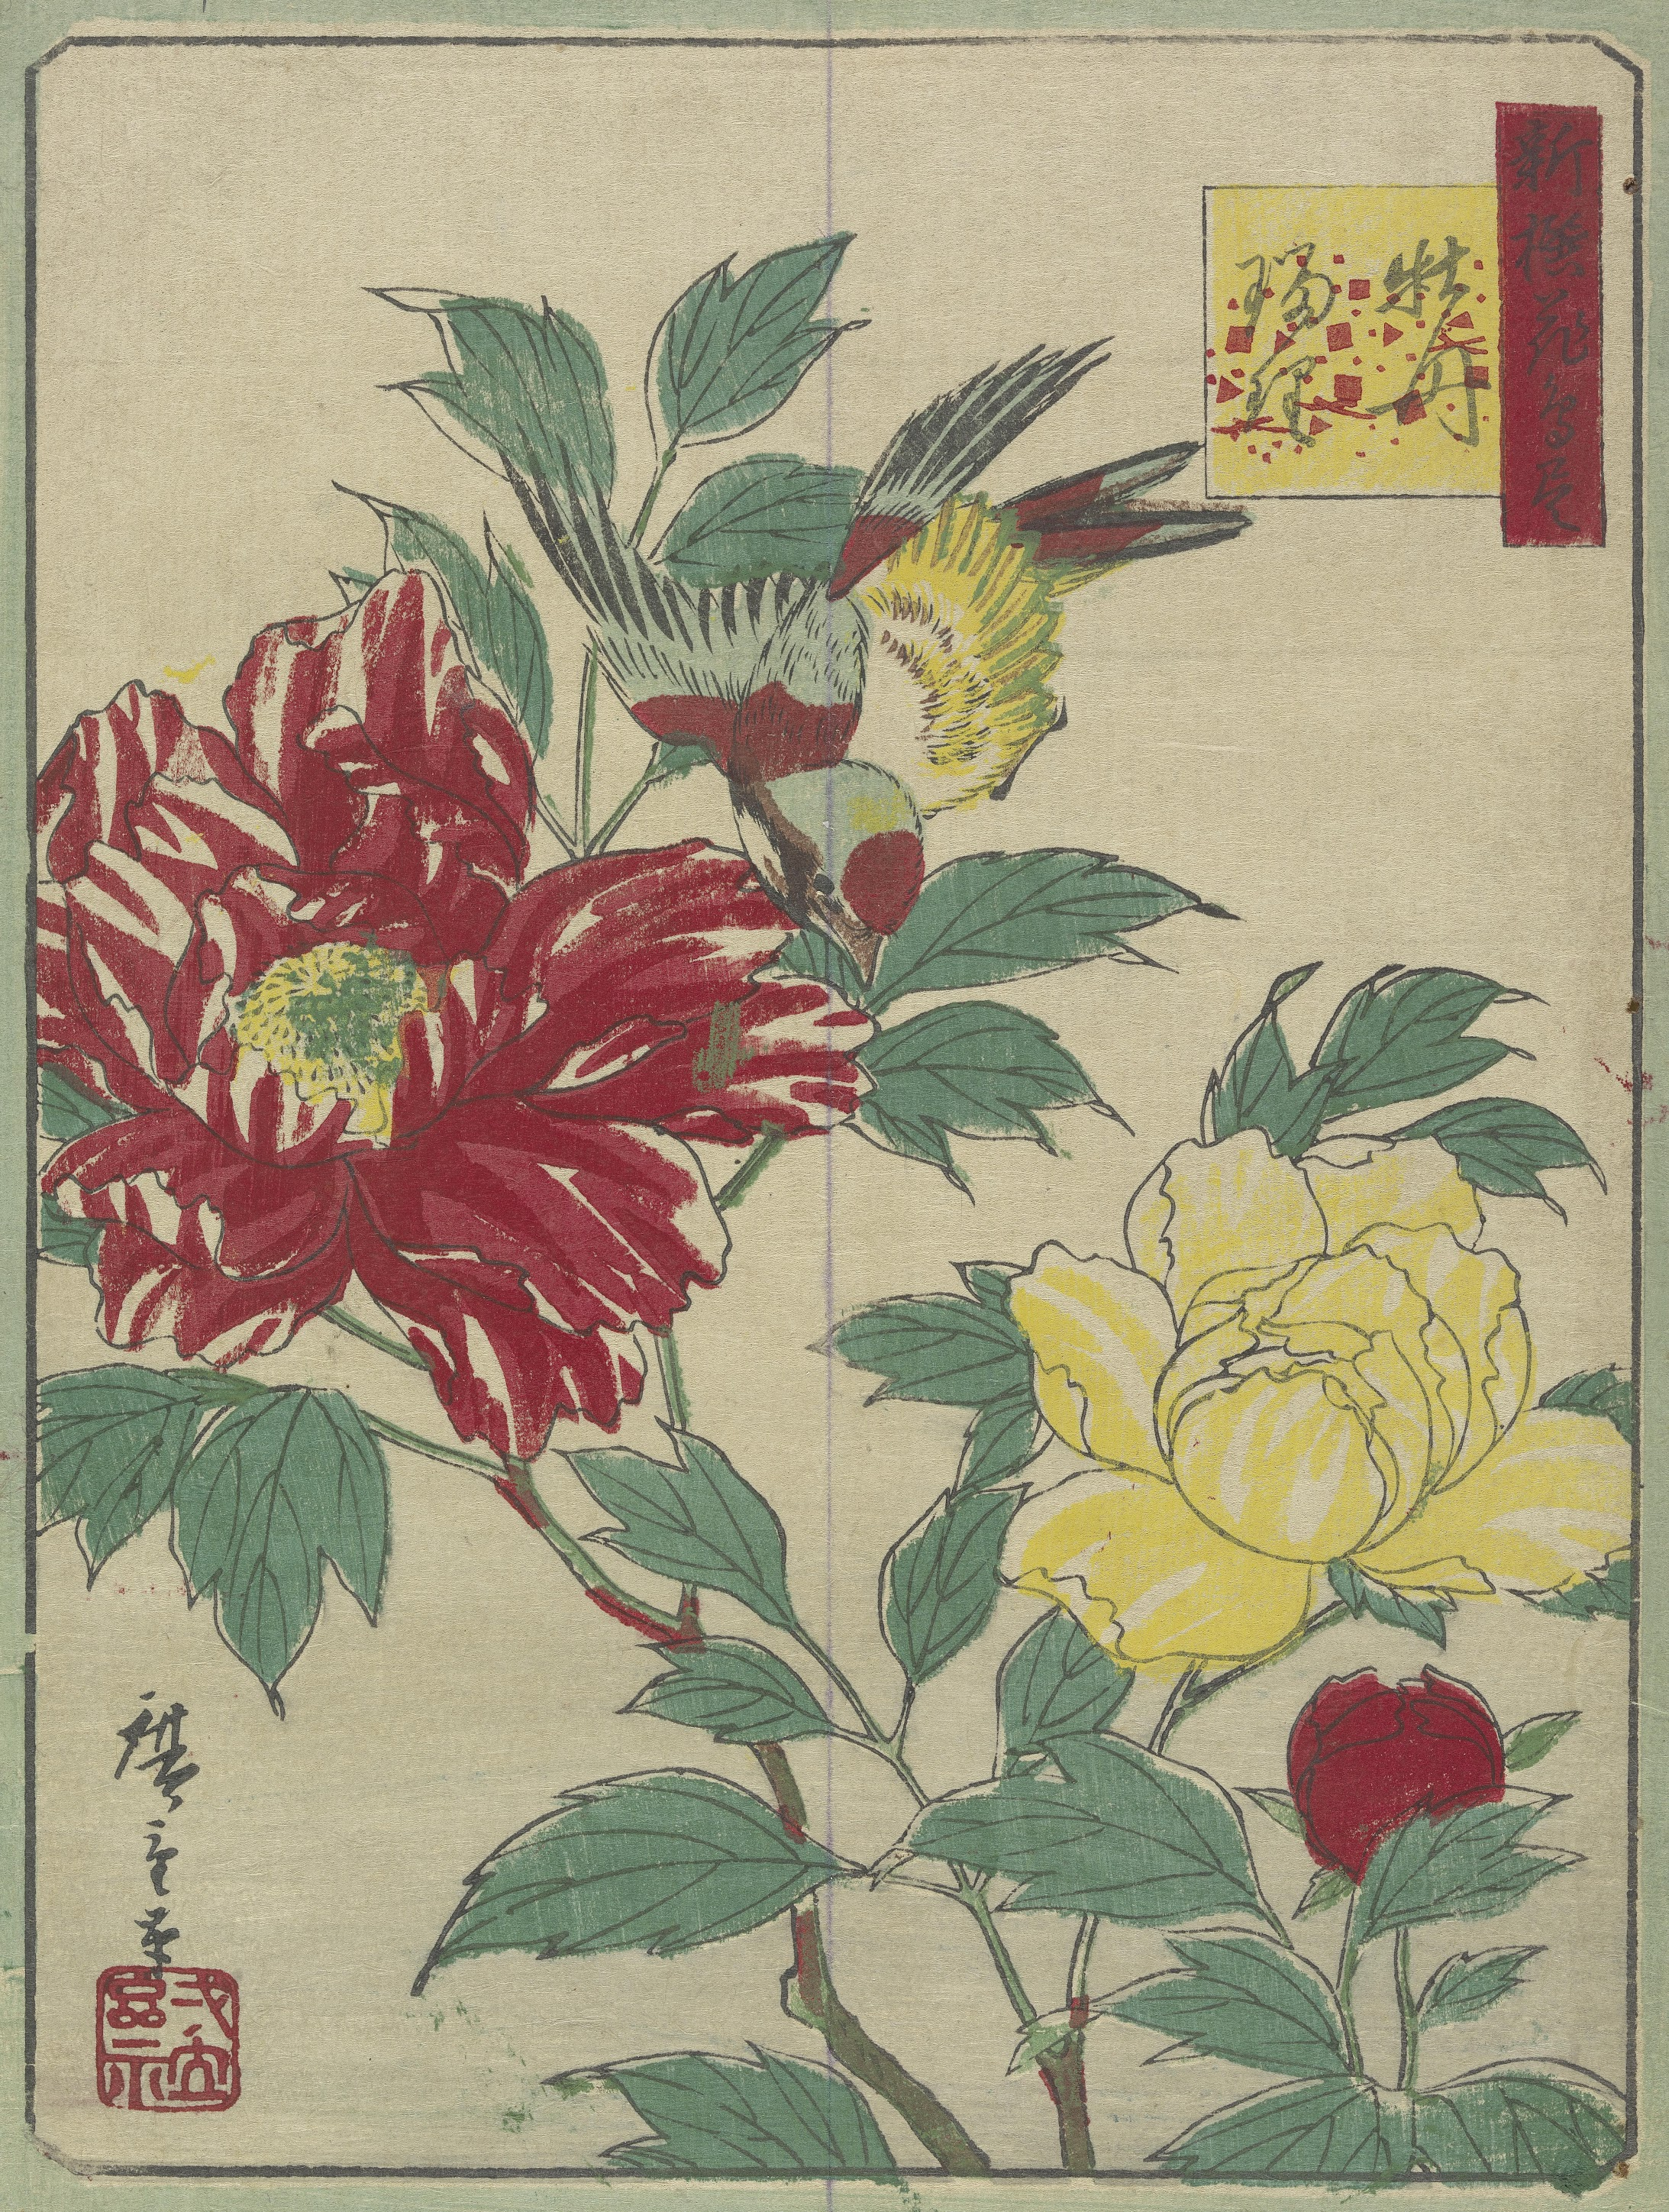 Peonies and Blue-and-White Flycatcher, from the album New Selection of Birds and Flowers Tokyo, 1871-1873 Utagawa Hiroshige III (1842 - 1894)